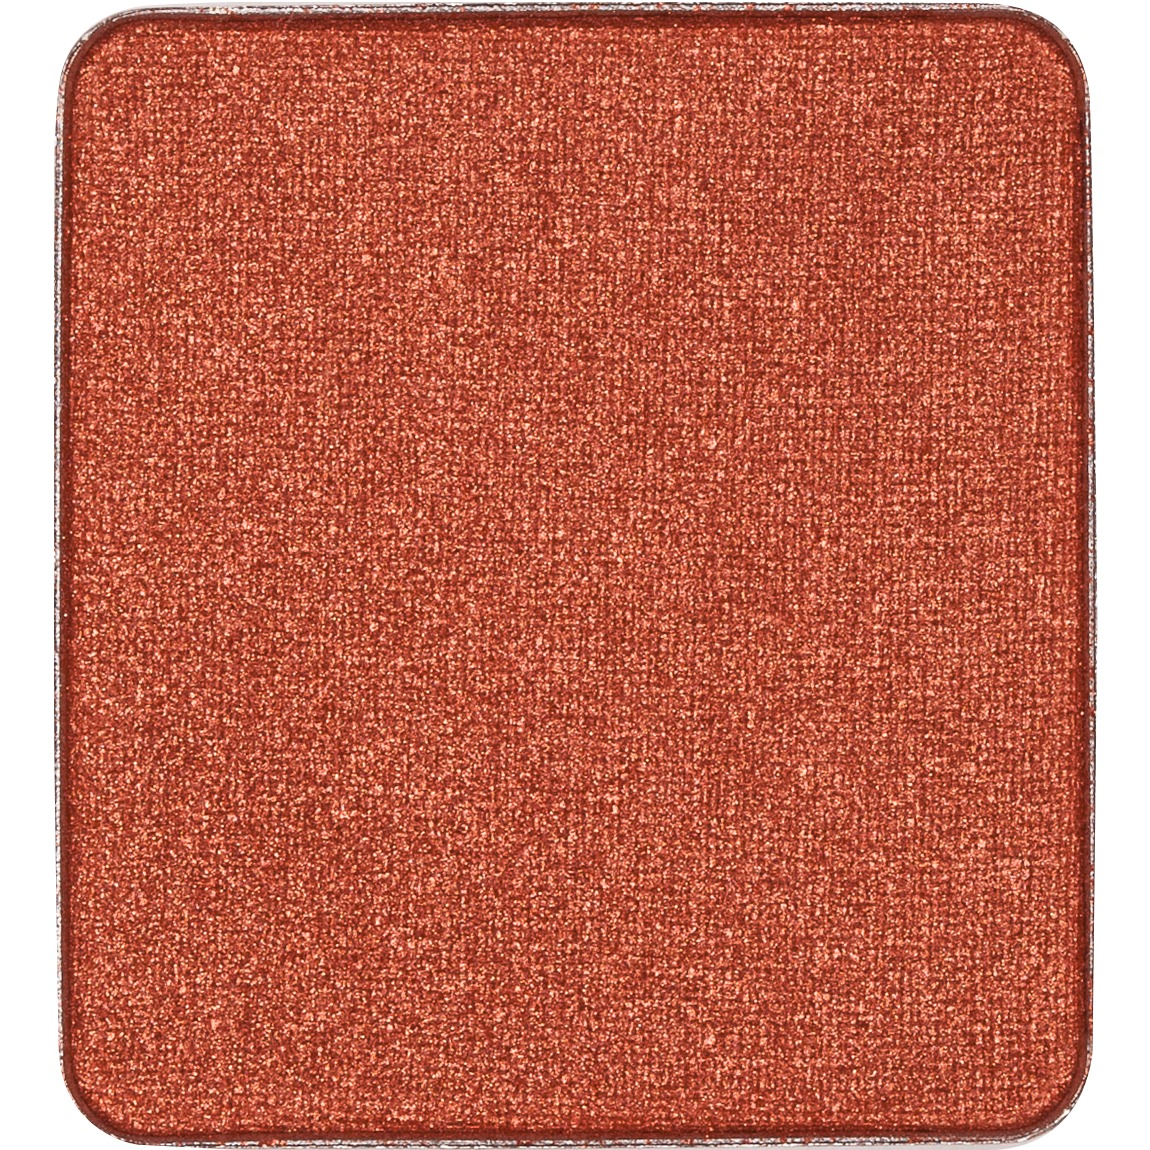 Inglot Cosmetics Freedom System Eye Shadow 605 Pearl alternative view 1 - product swatch.